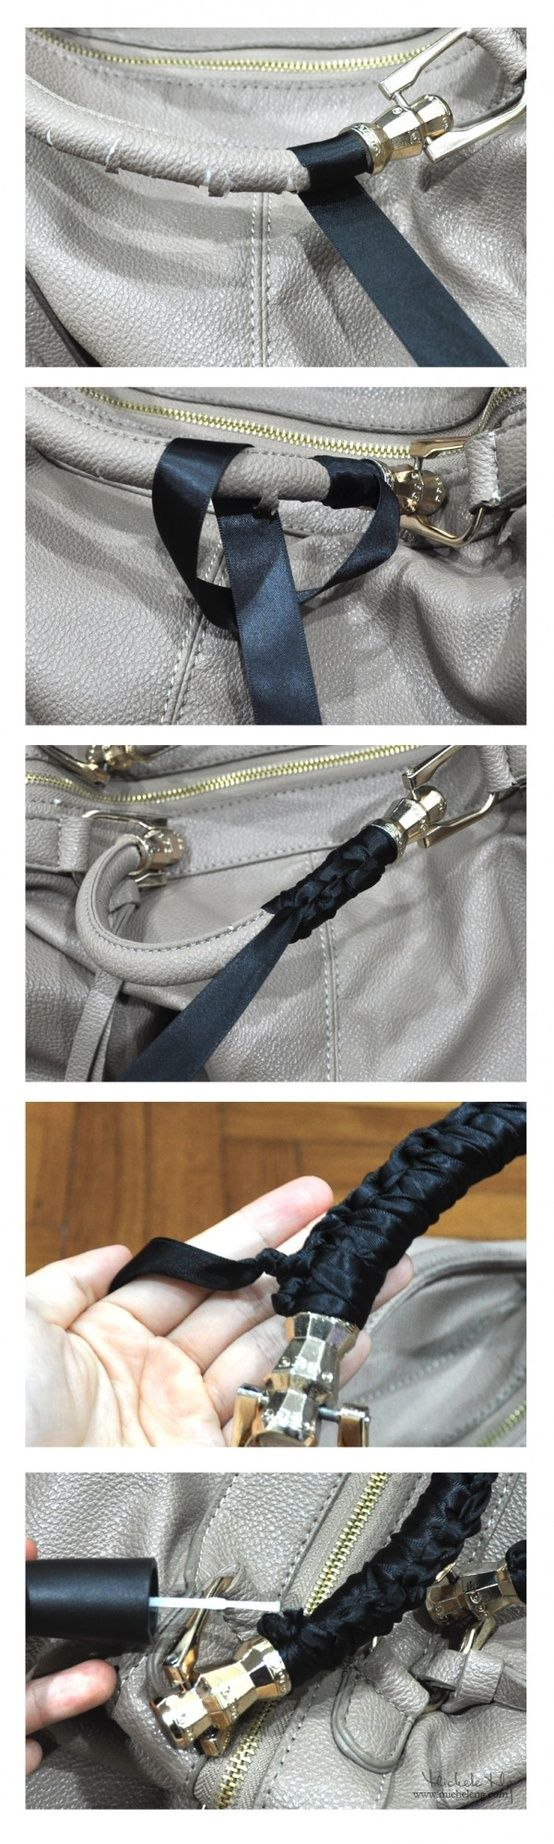 Going to try this so I don't have to throw out my 2 month old purse!: Coach Pur, Handbags Handles, Ribbons Tutorials, Torn Handbags, Pur Handles, Fall Apartment, Great Ideas, Save Torn, Leather Bags